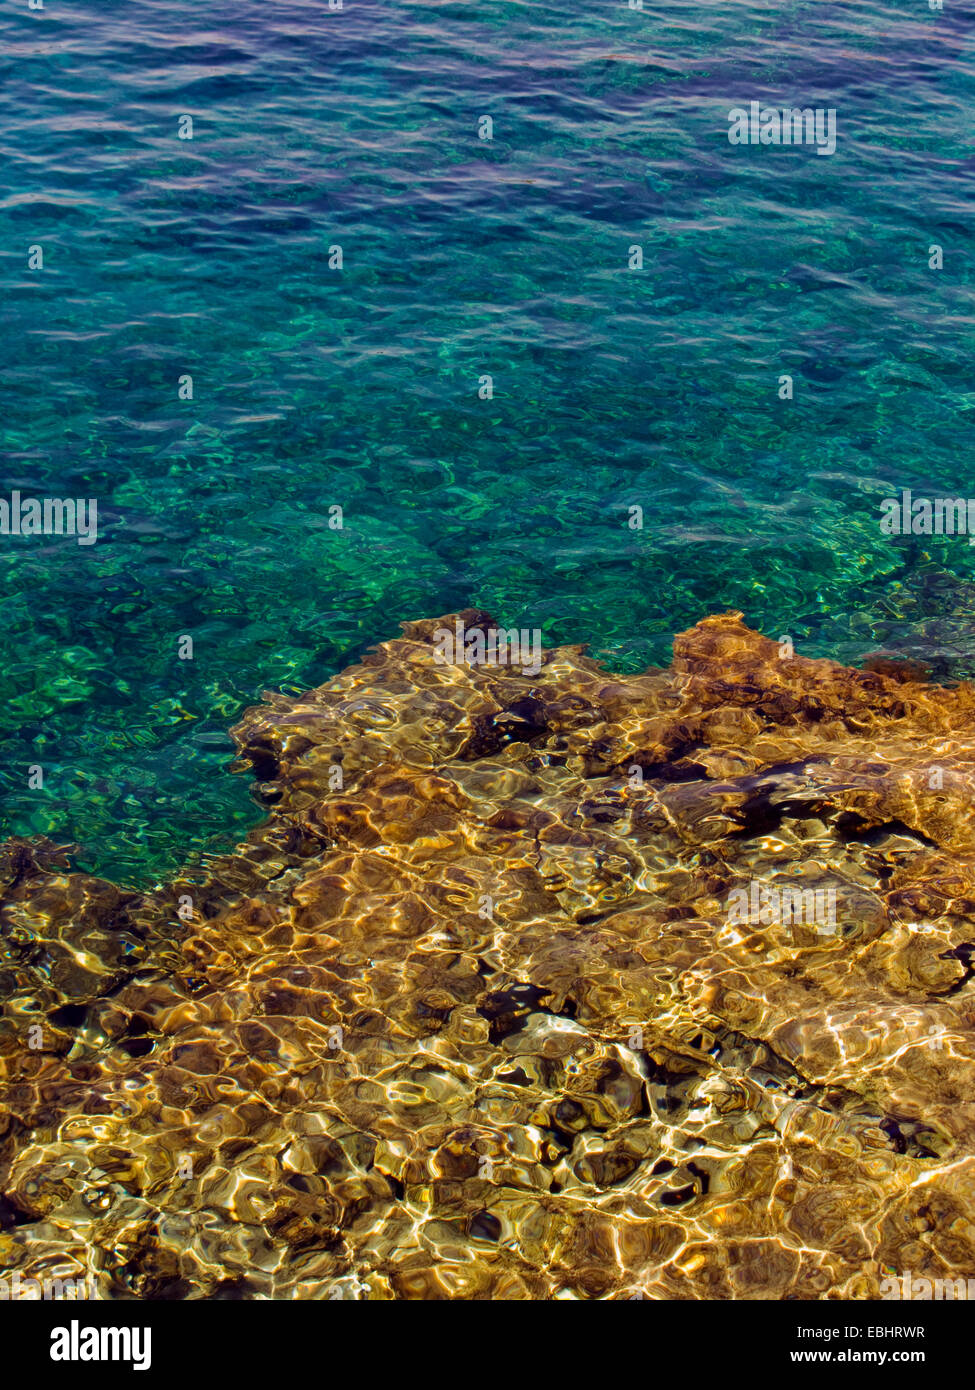 Rocks under water at Protaras, Cyprus, Europe. Stock Photo